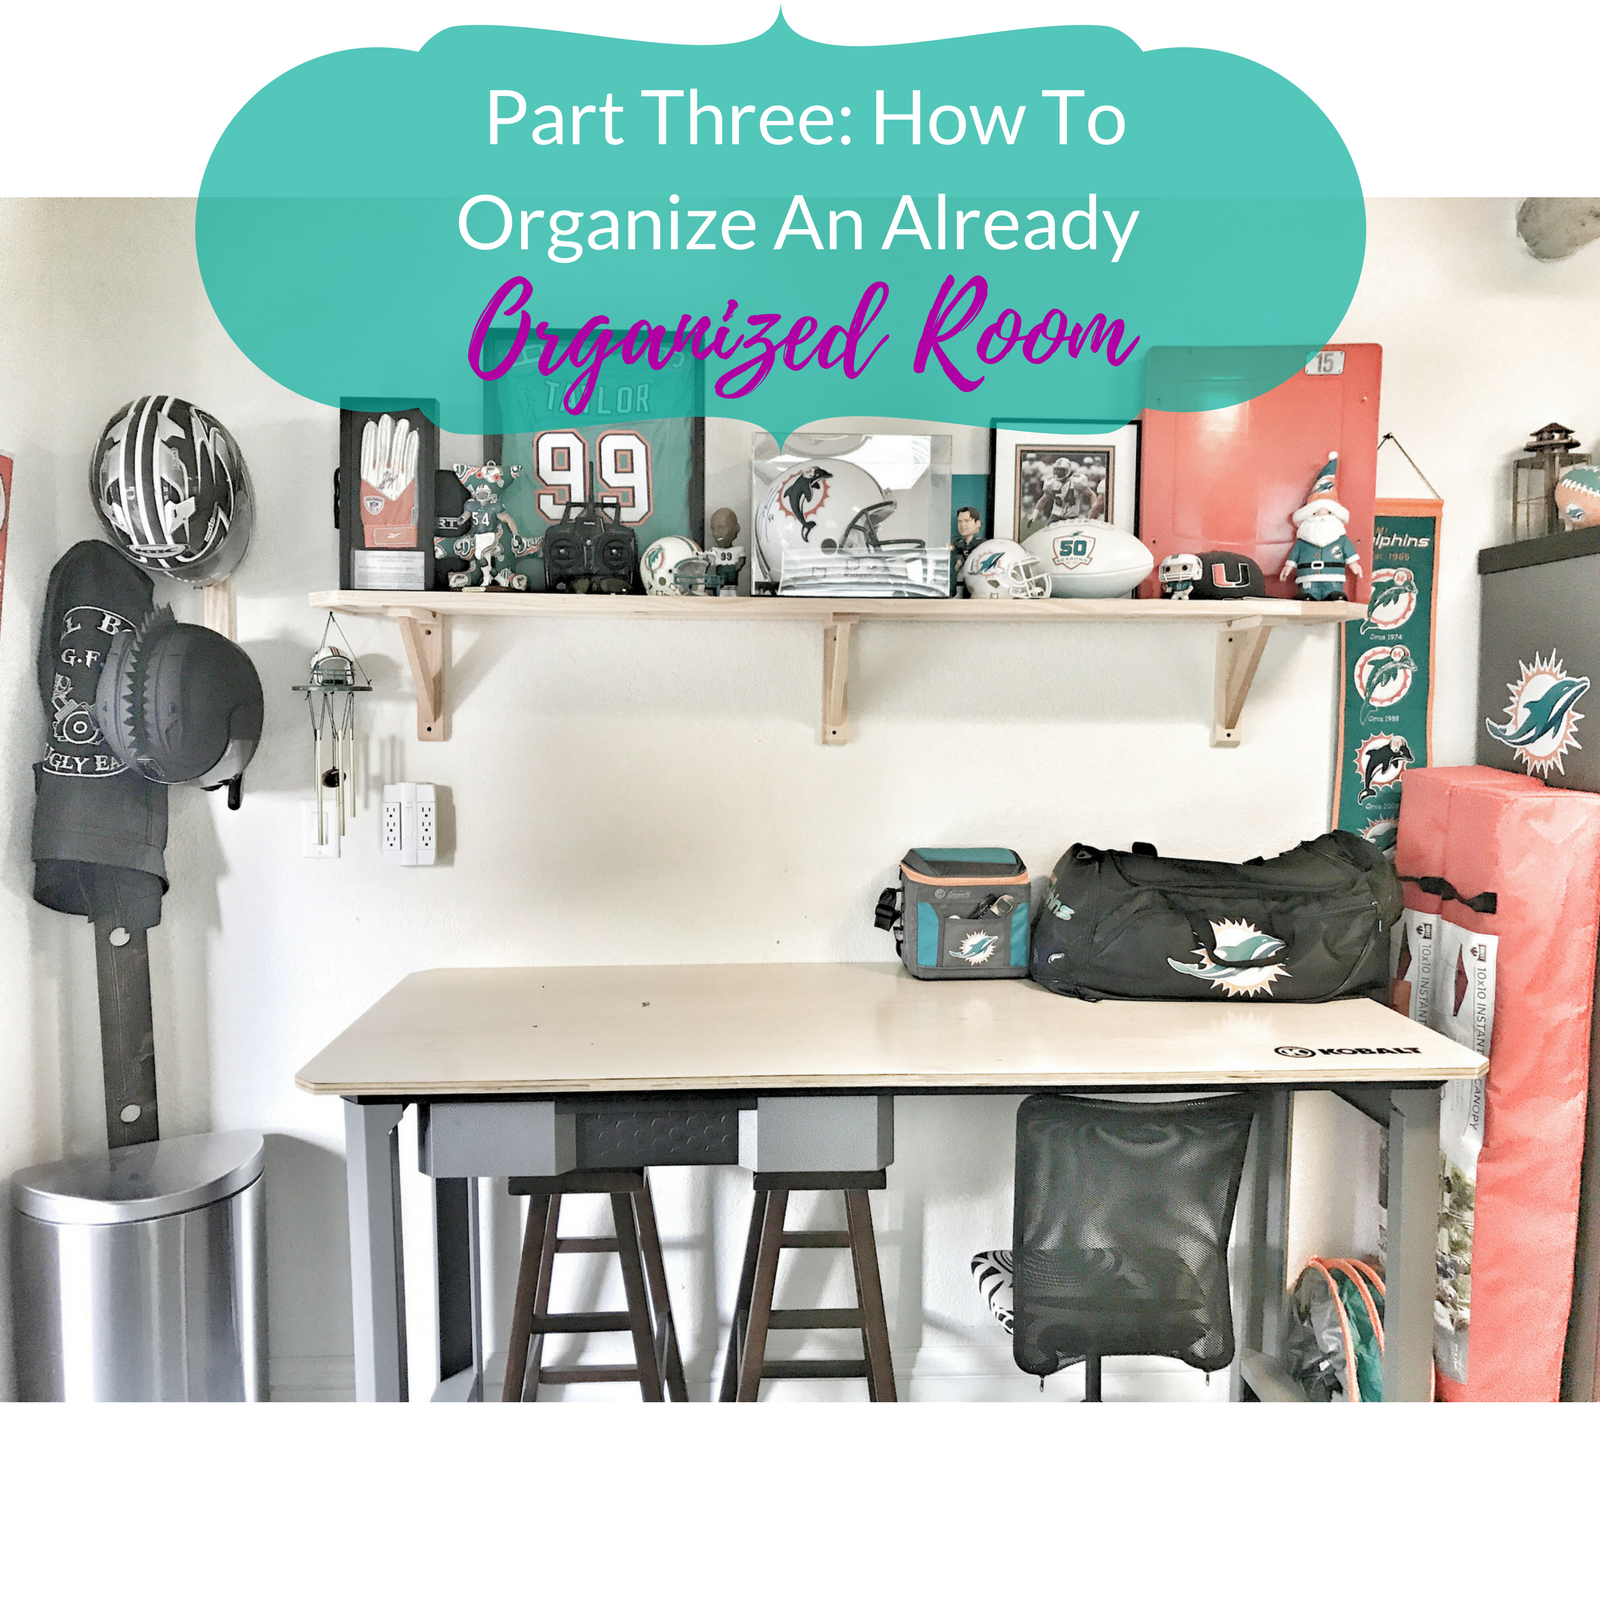 Part Three: How to Organize An Already Organized Room